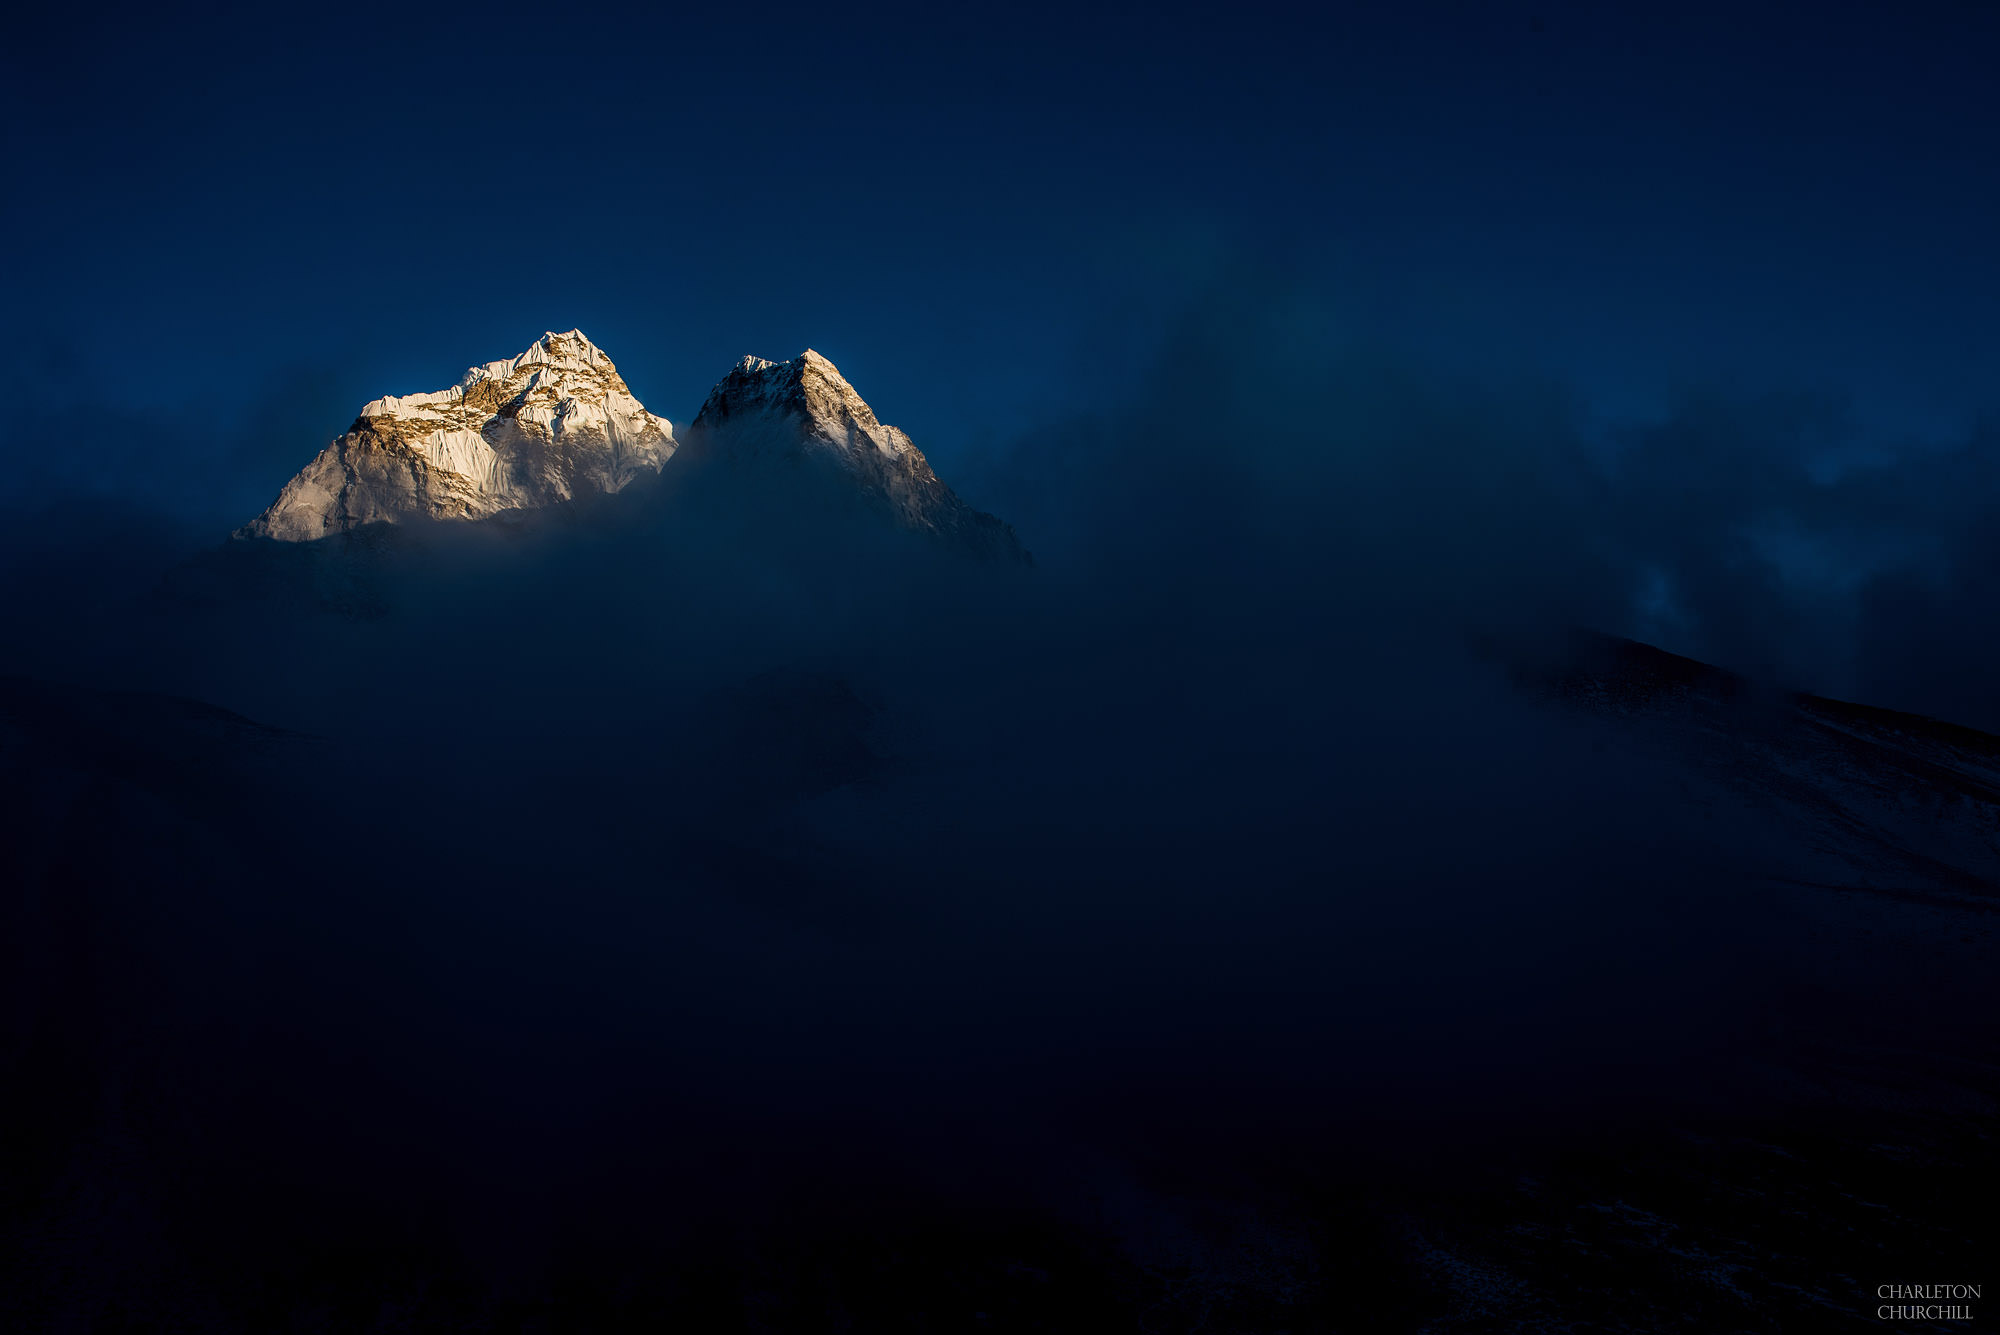 Mt. Everest landscape photos